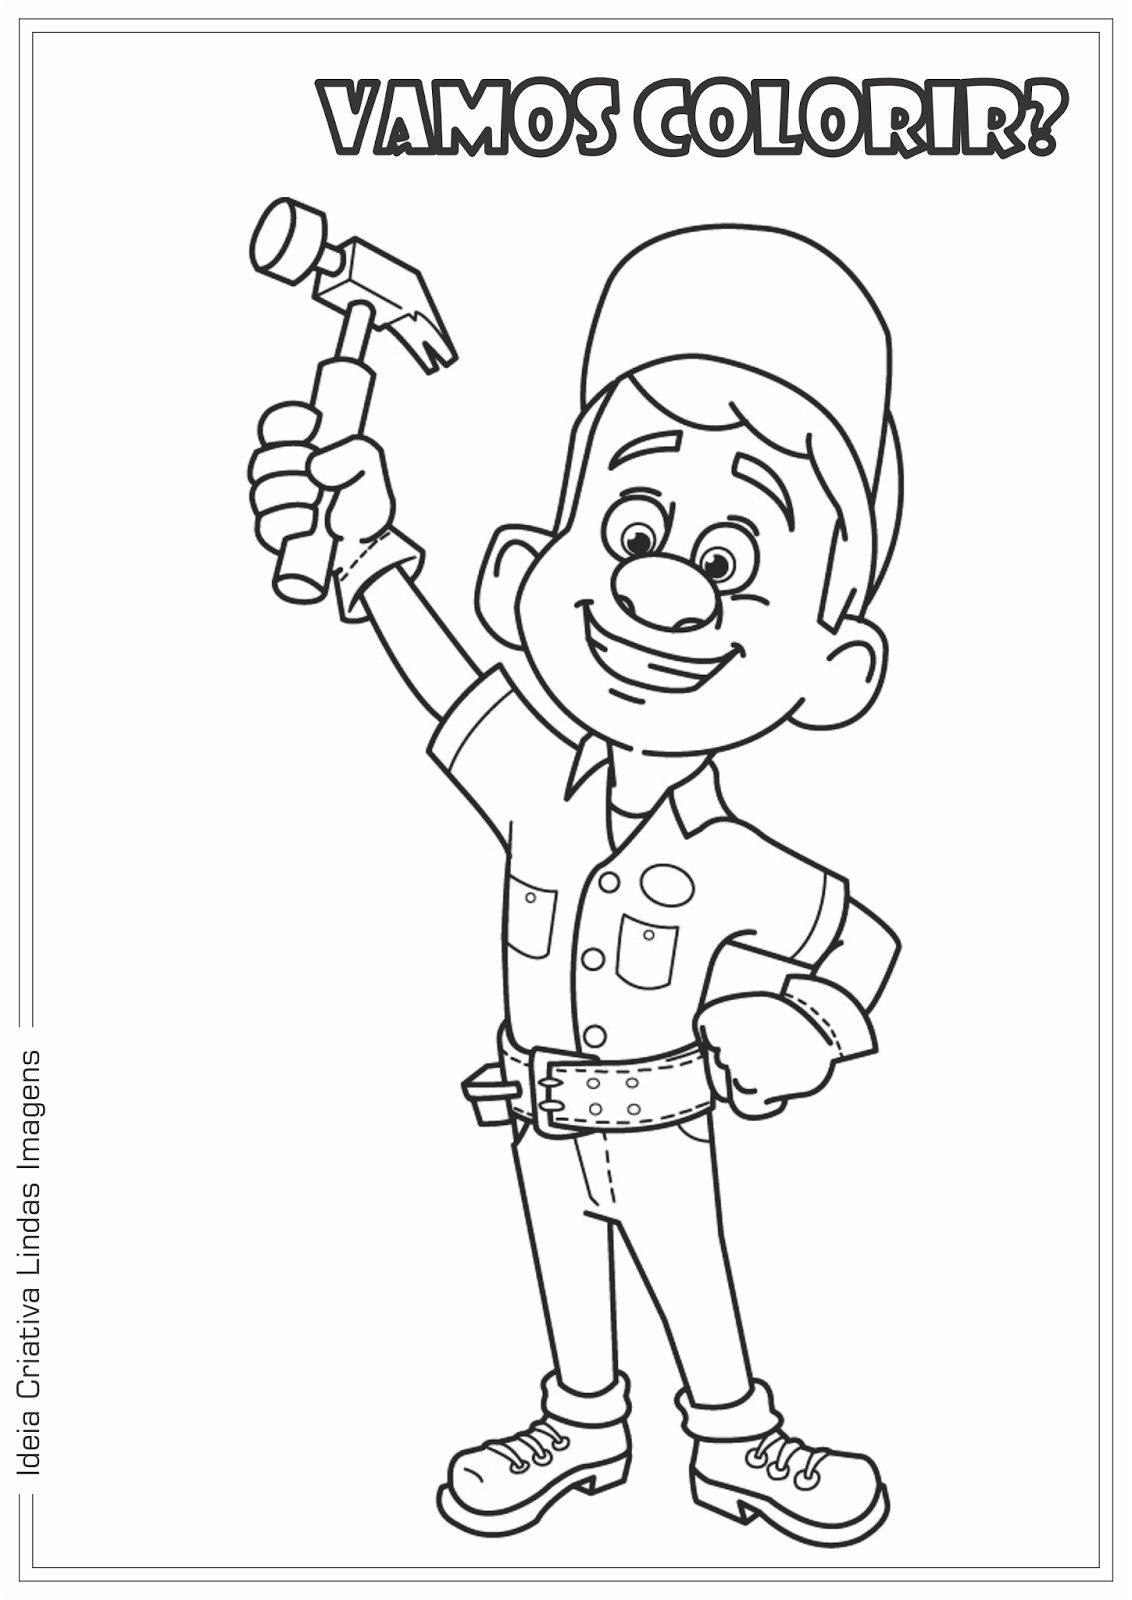 Dessin Barbie furthermore Bella Durmiente Para Colorear E Imprimir X also Coloriage Dragon Ball Z A Imprimer additionally Detona Ralph together with . on barbie coloring pages